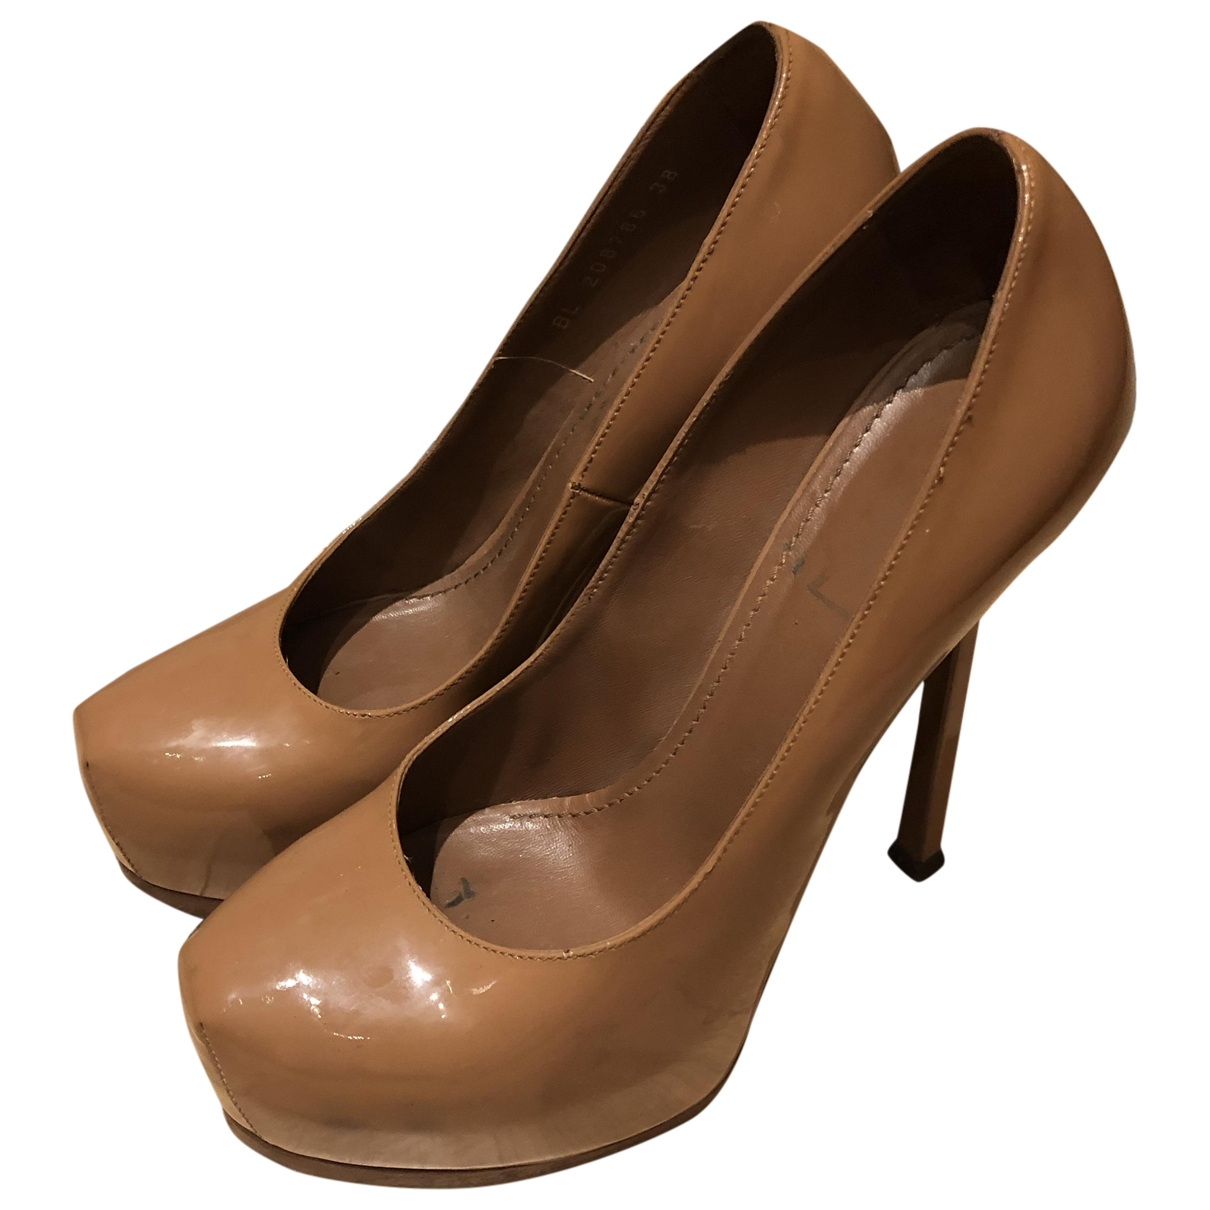 Yves Saint Laurent Trib Too Beige Patent leather Heels for Women 38 EU